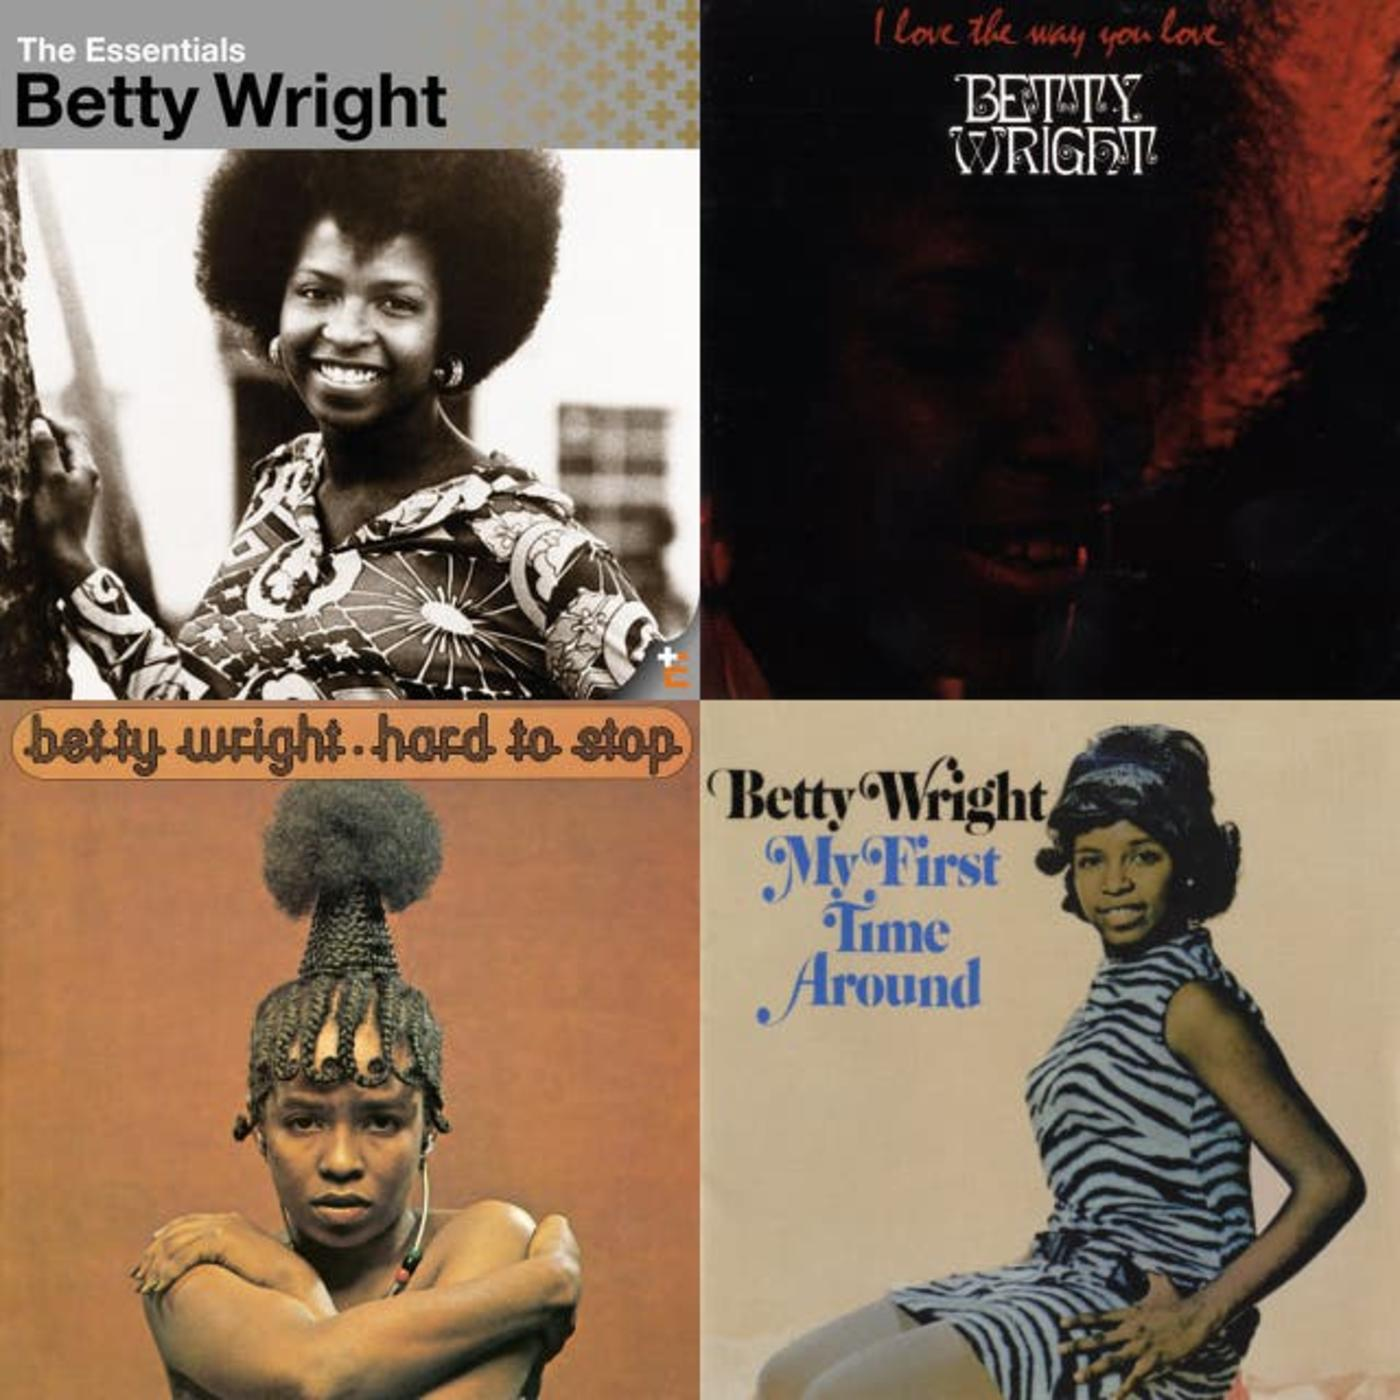 R.I.P., Betty Wright